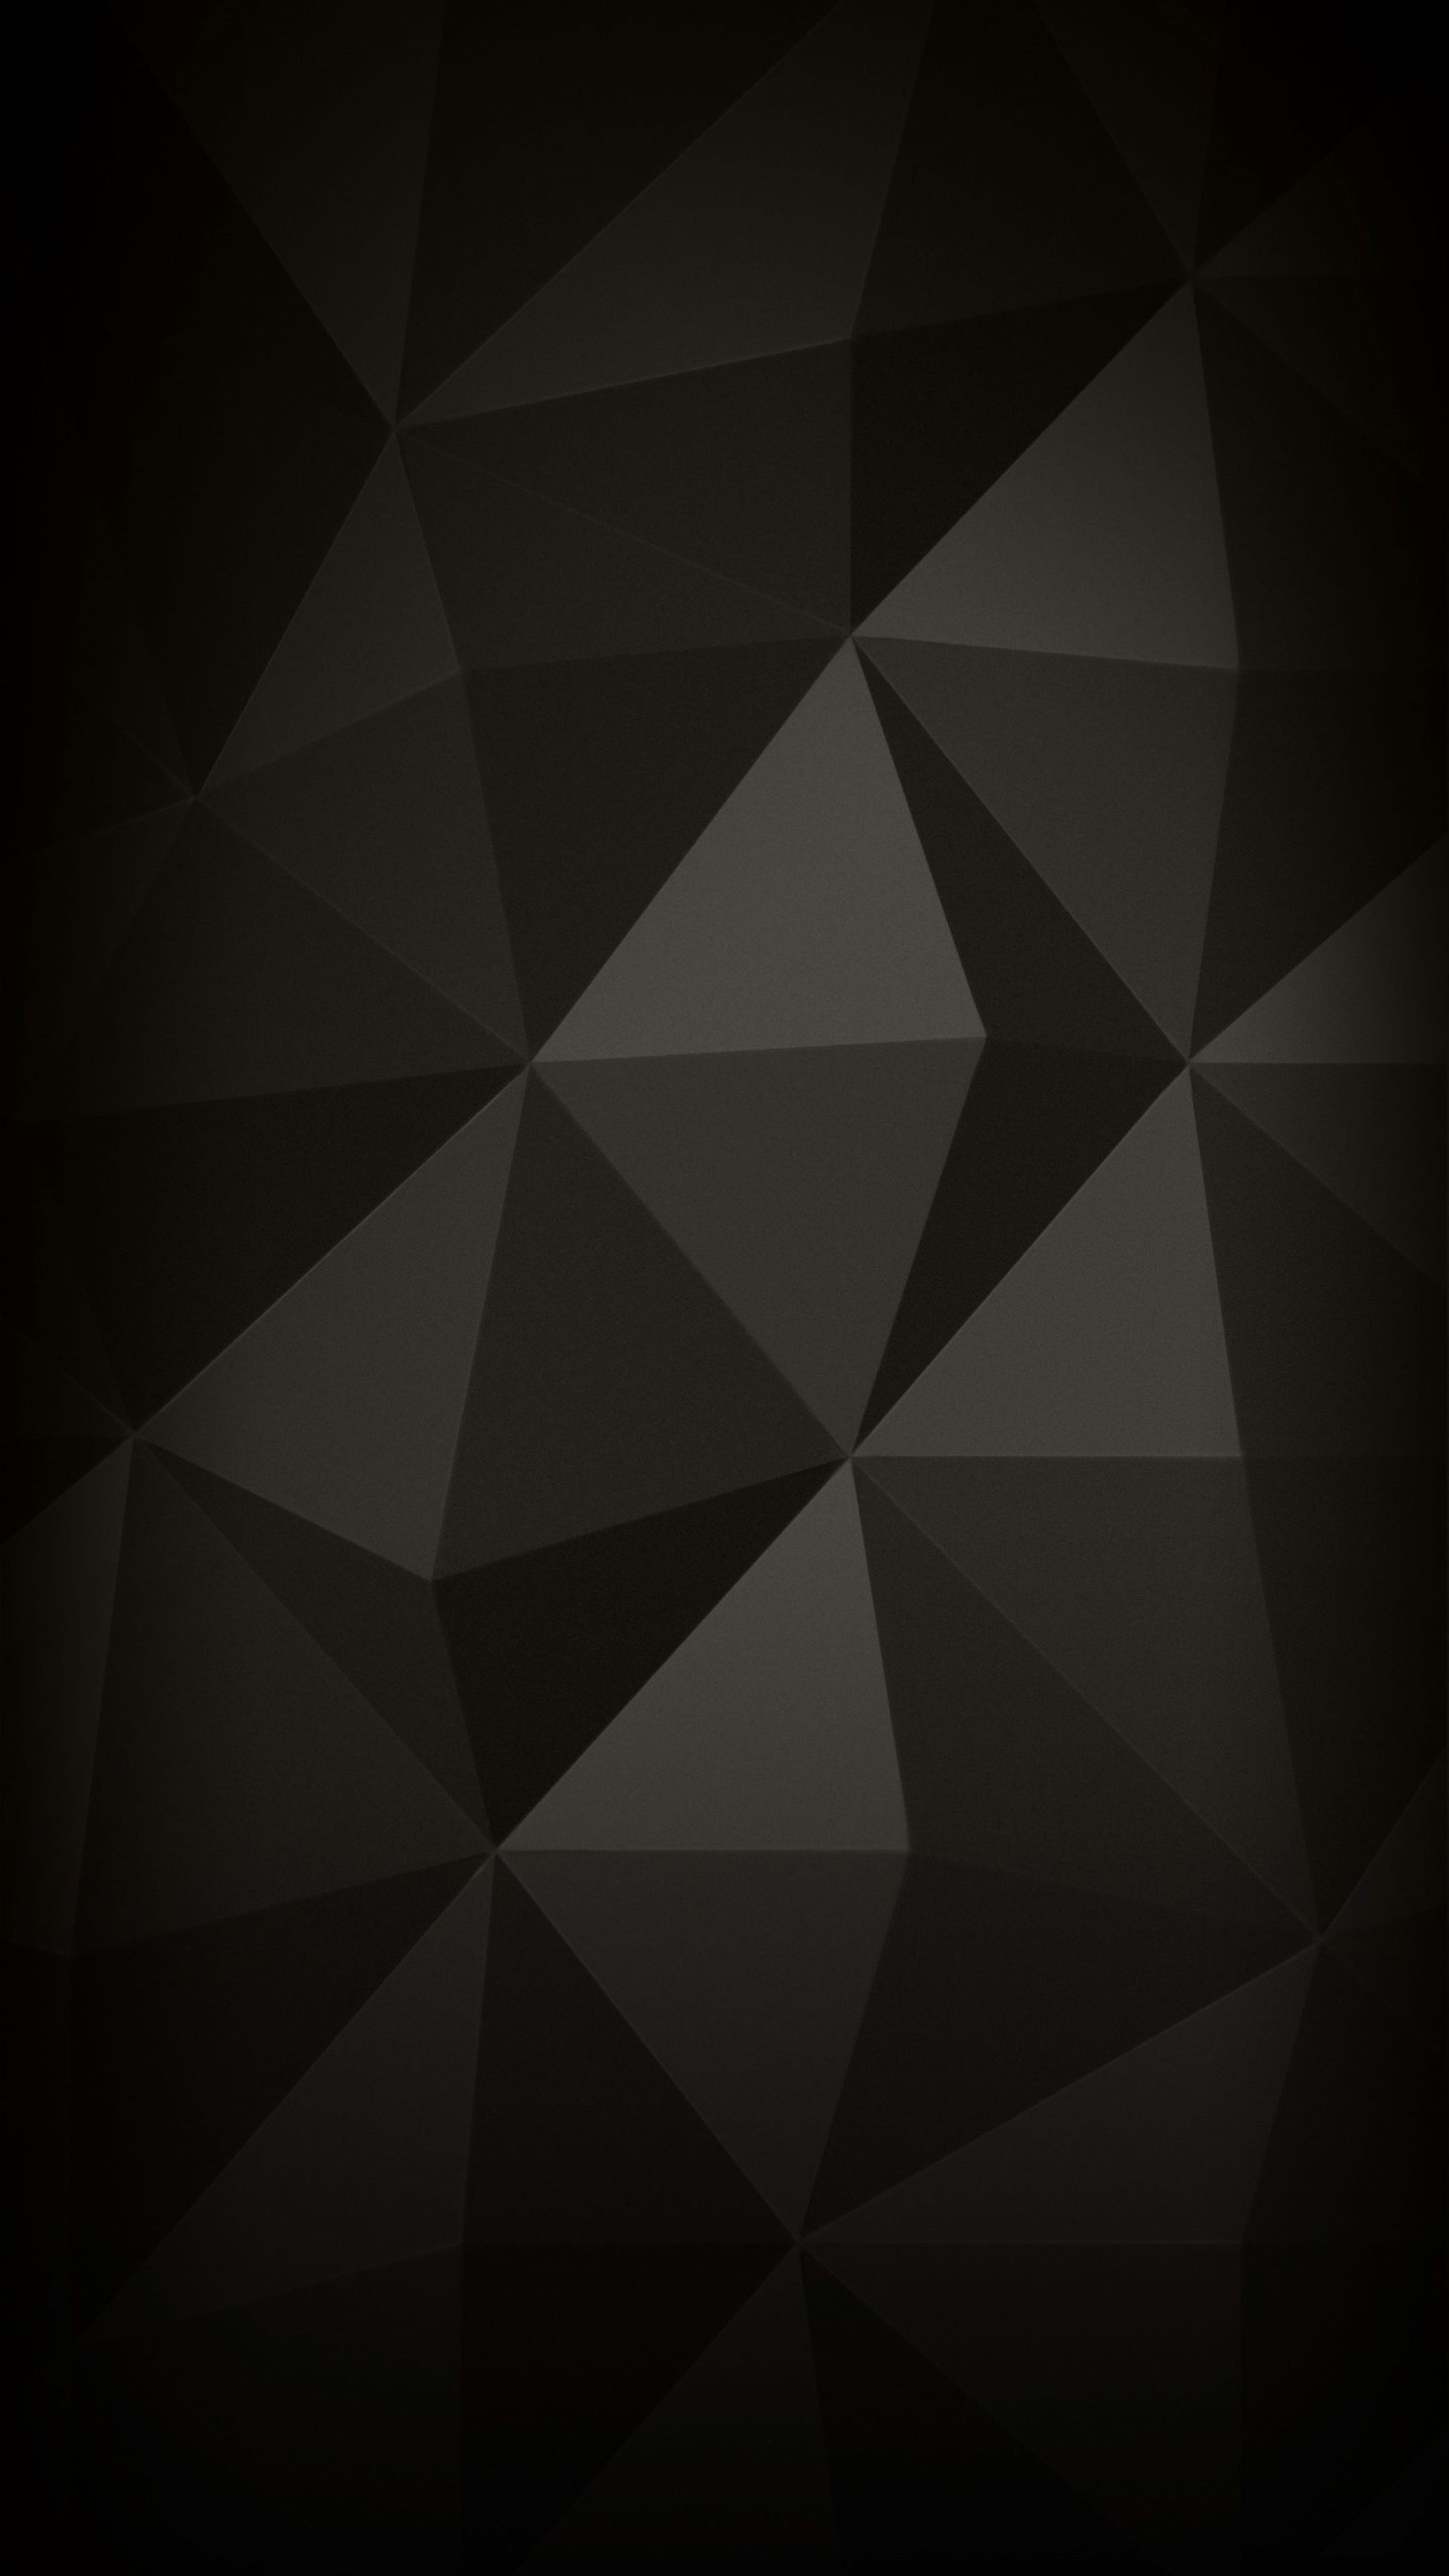 4k Wallpaper Abstract Black Posted By Christopher Johnson